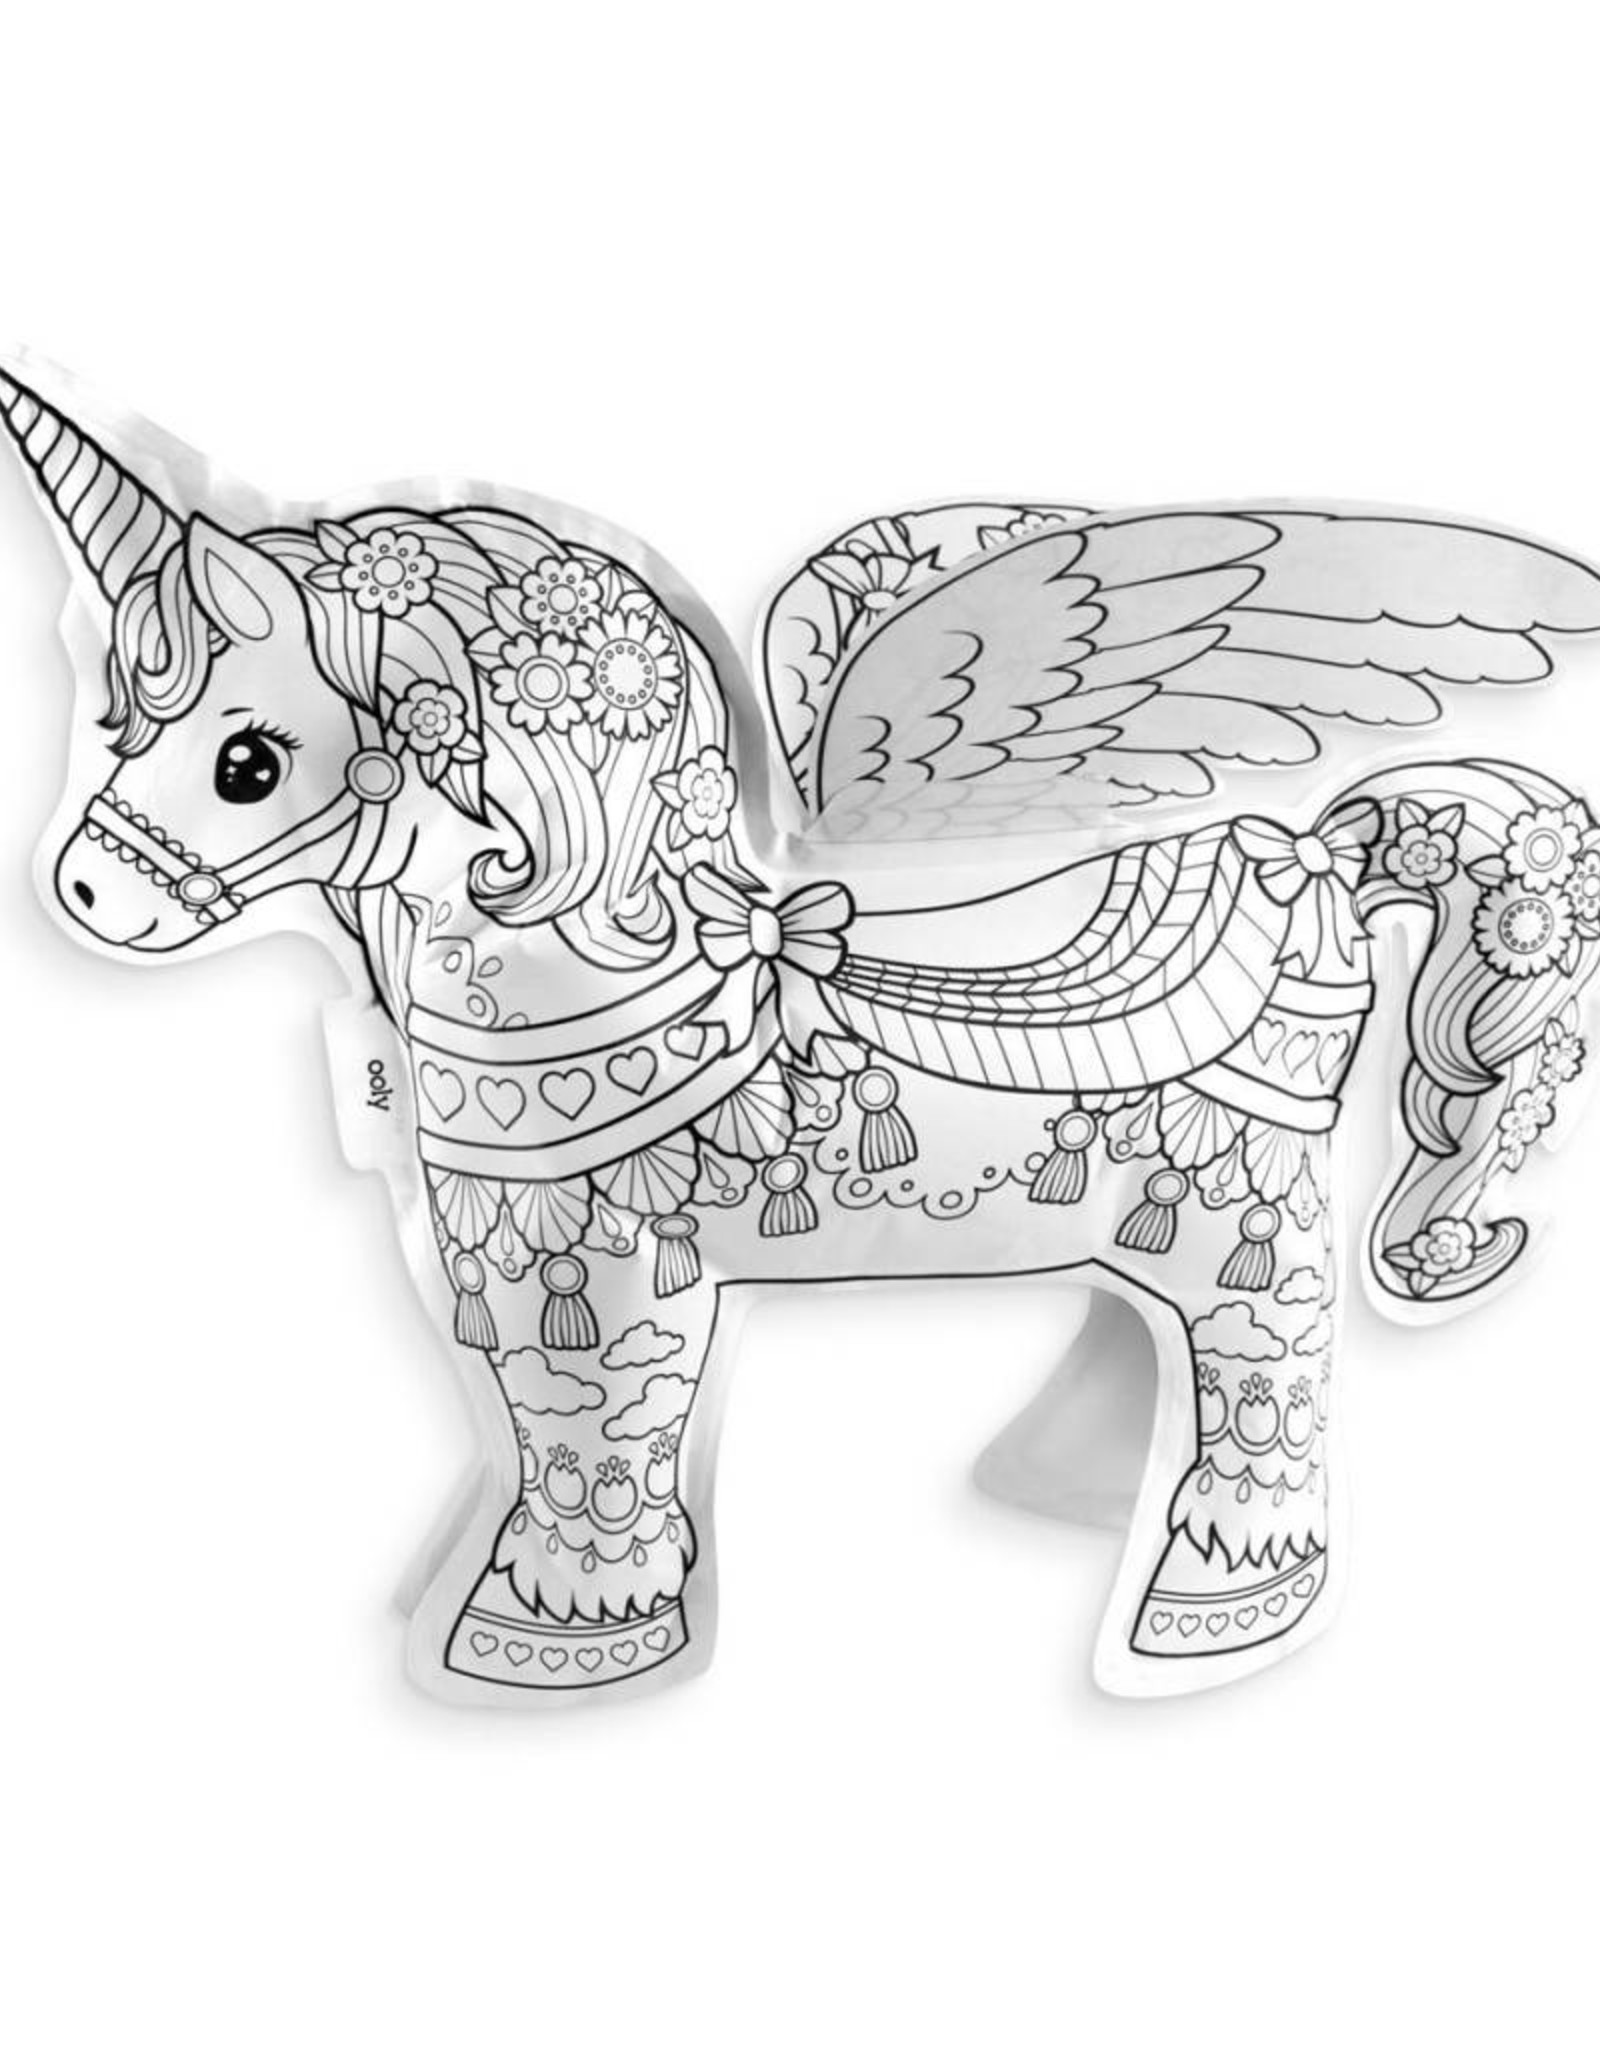 OOLY 3D colorables- magic unicorn